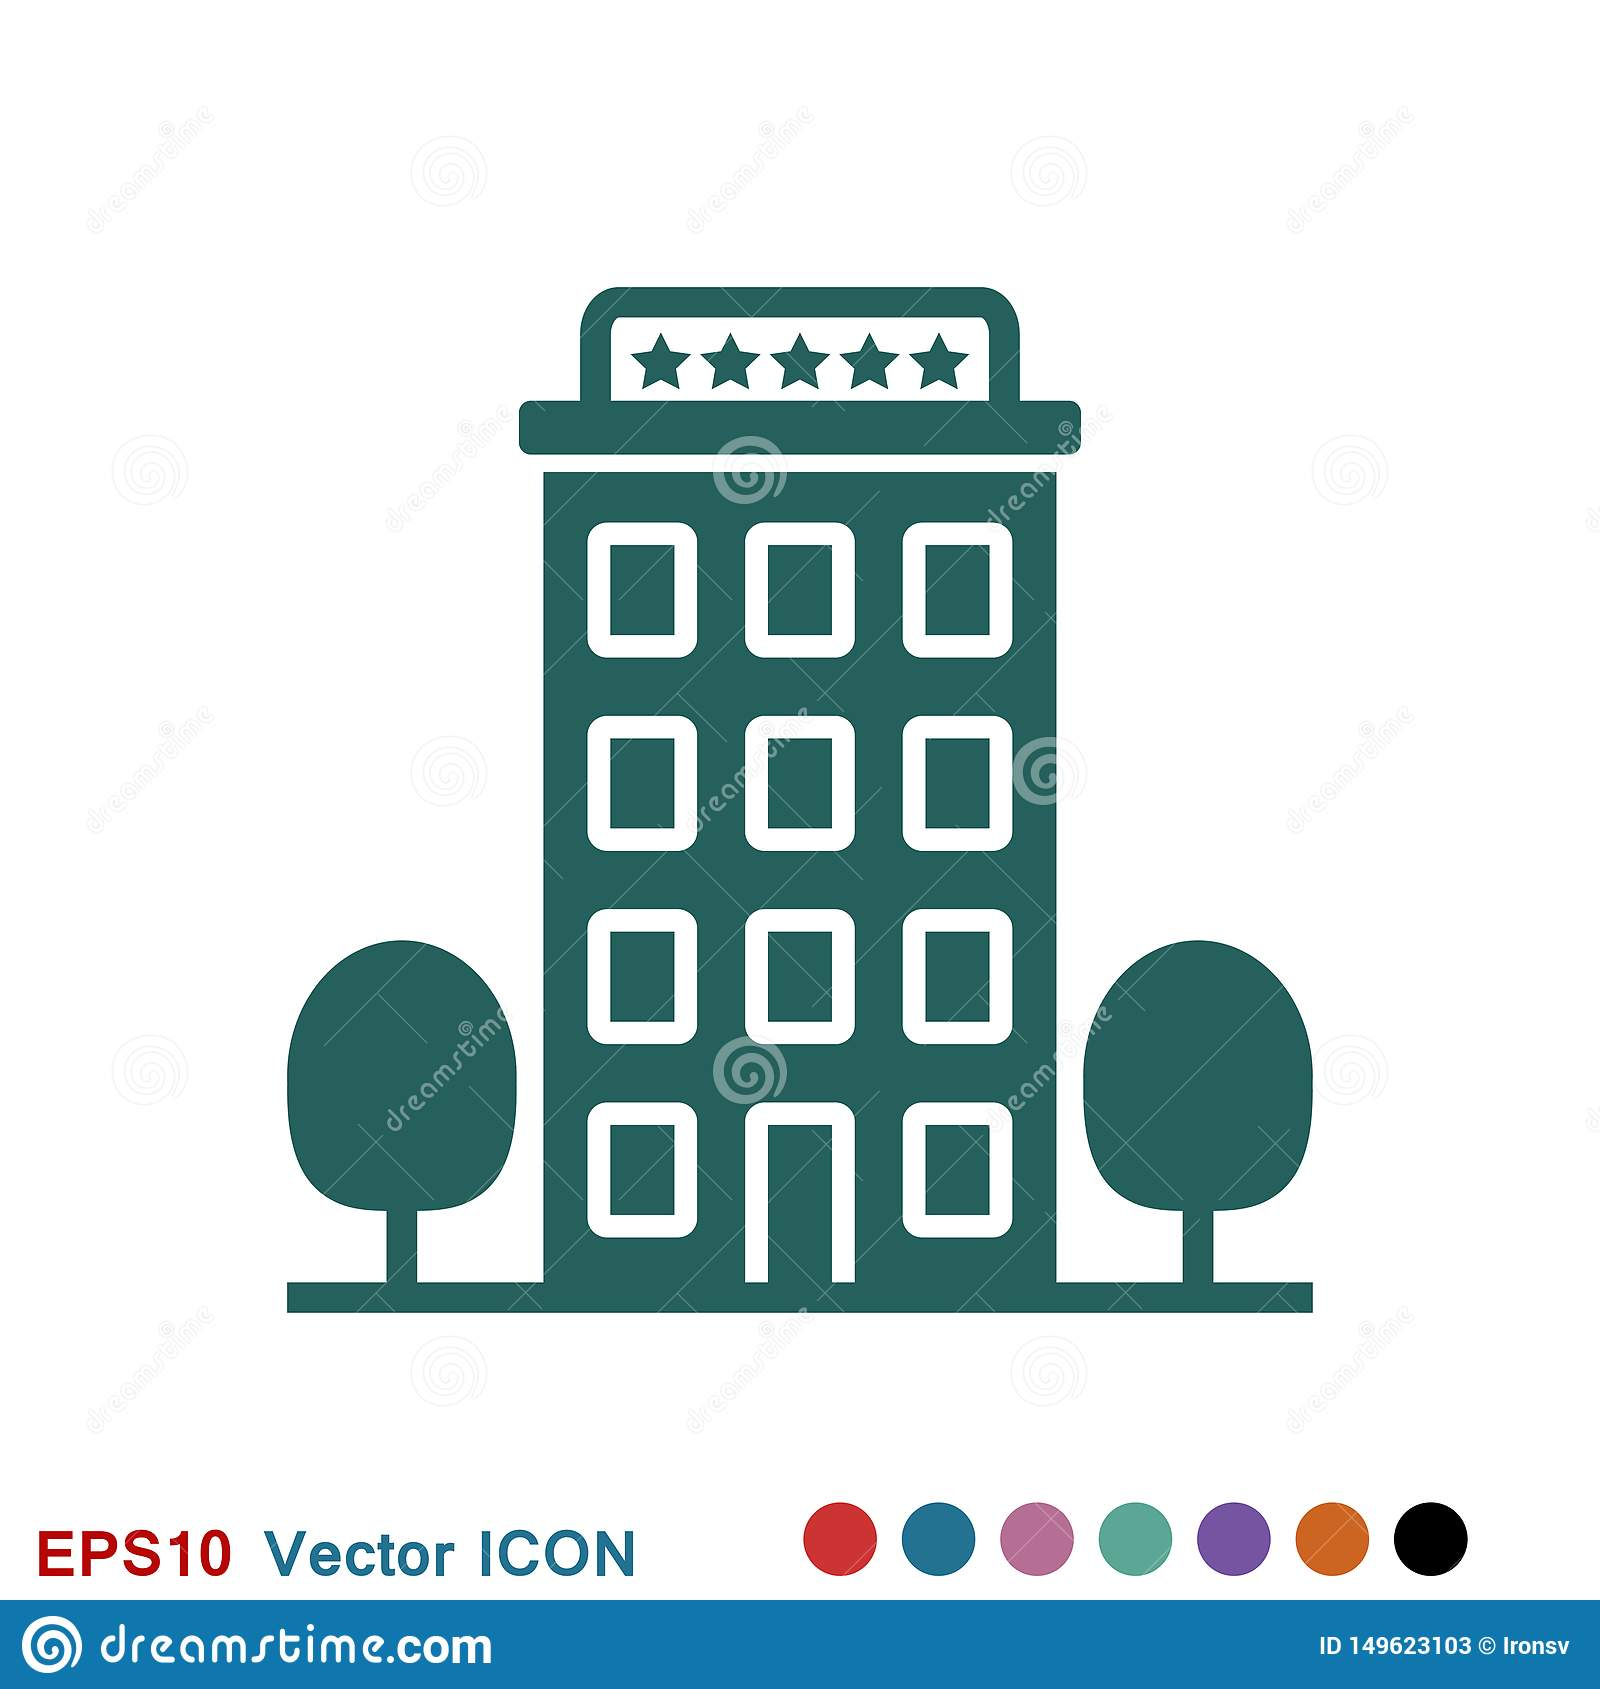 Hotel icon logo, illustration, vector sign symbol for design